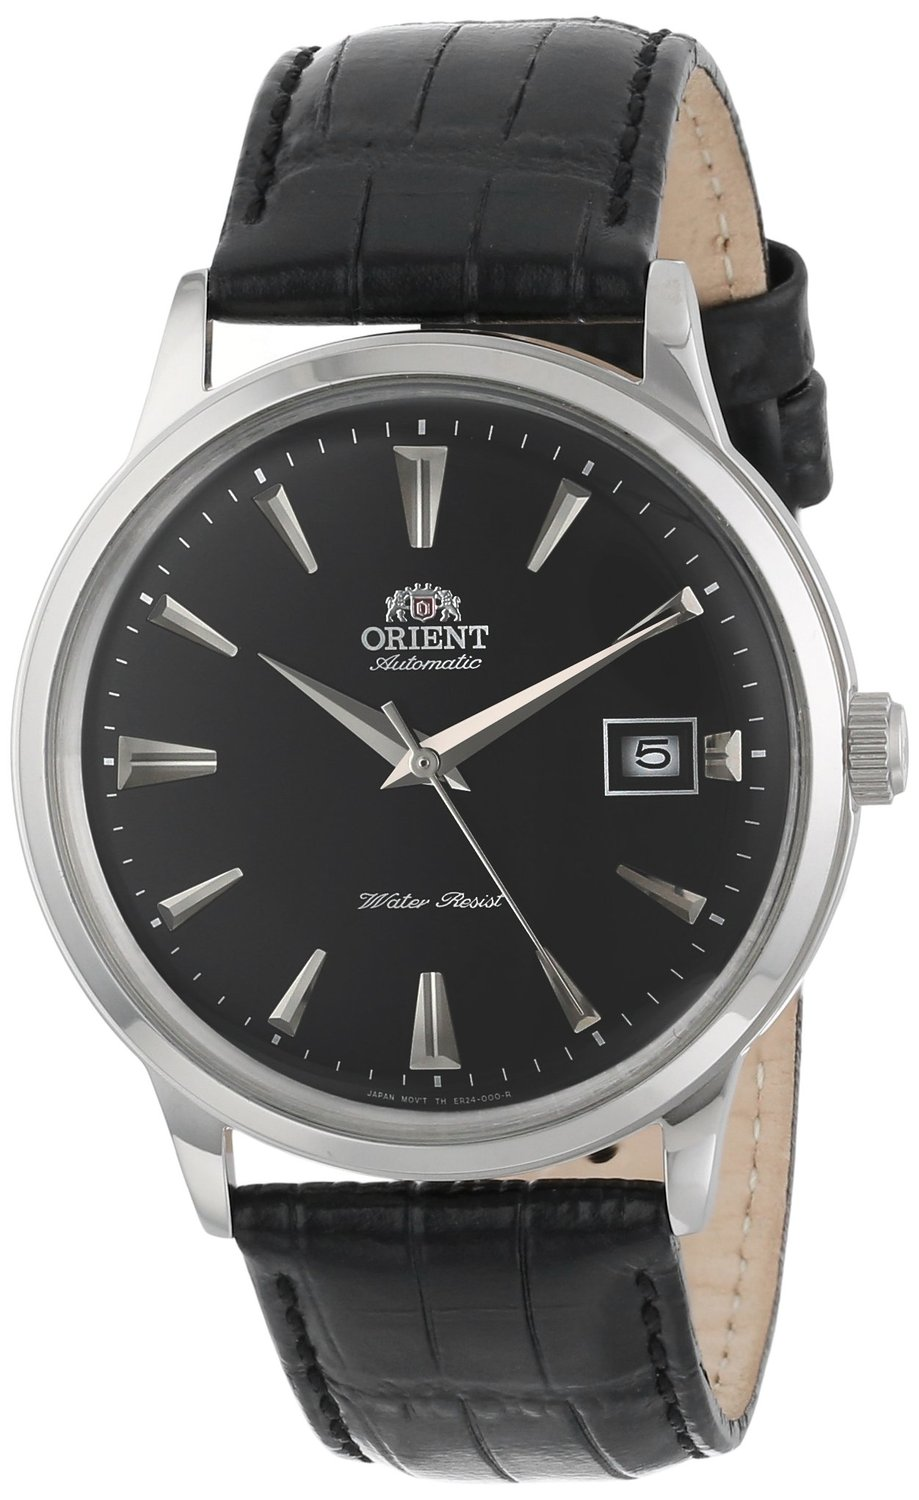 Orient Bambino Automatic Watch Review FER24004B0